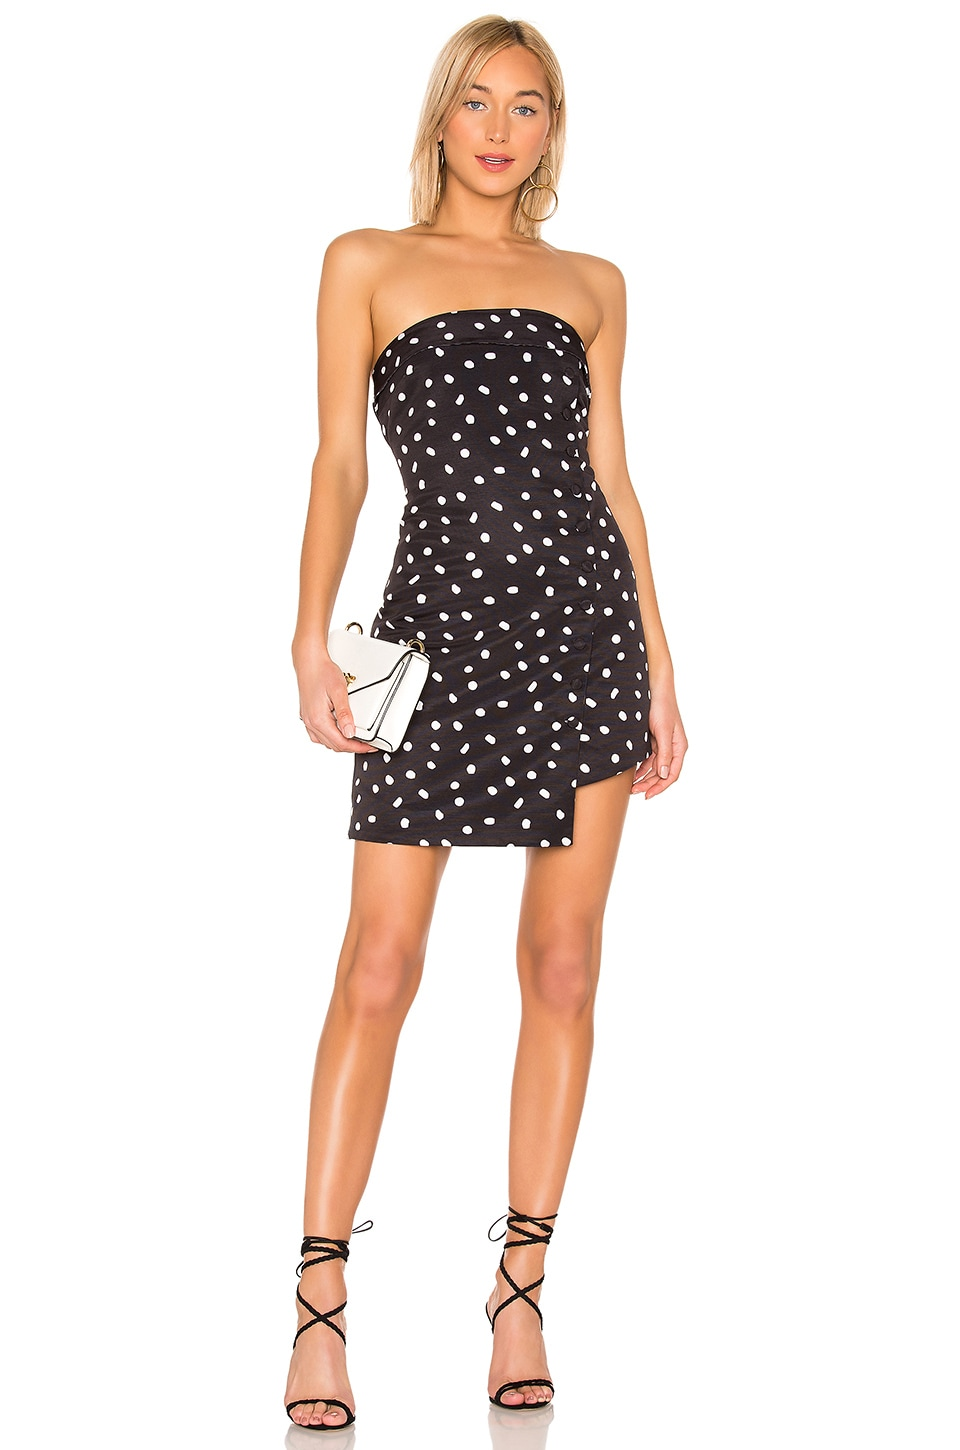 L'Academie Cute As A Button Dress in Black